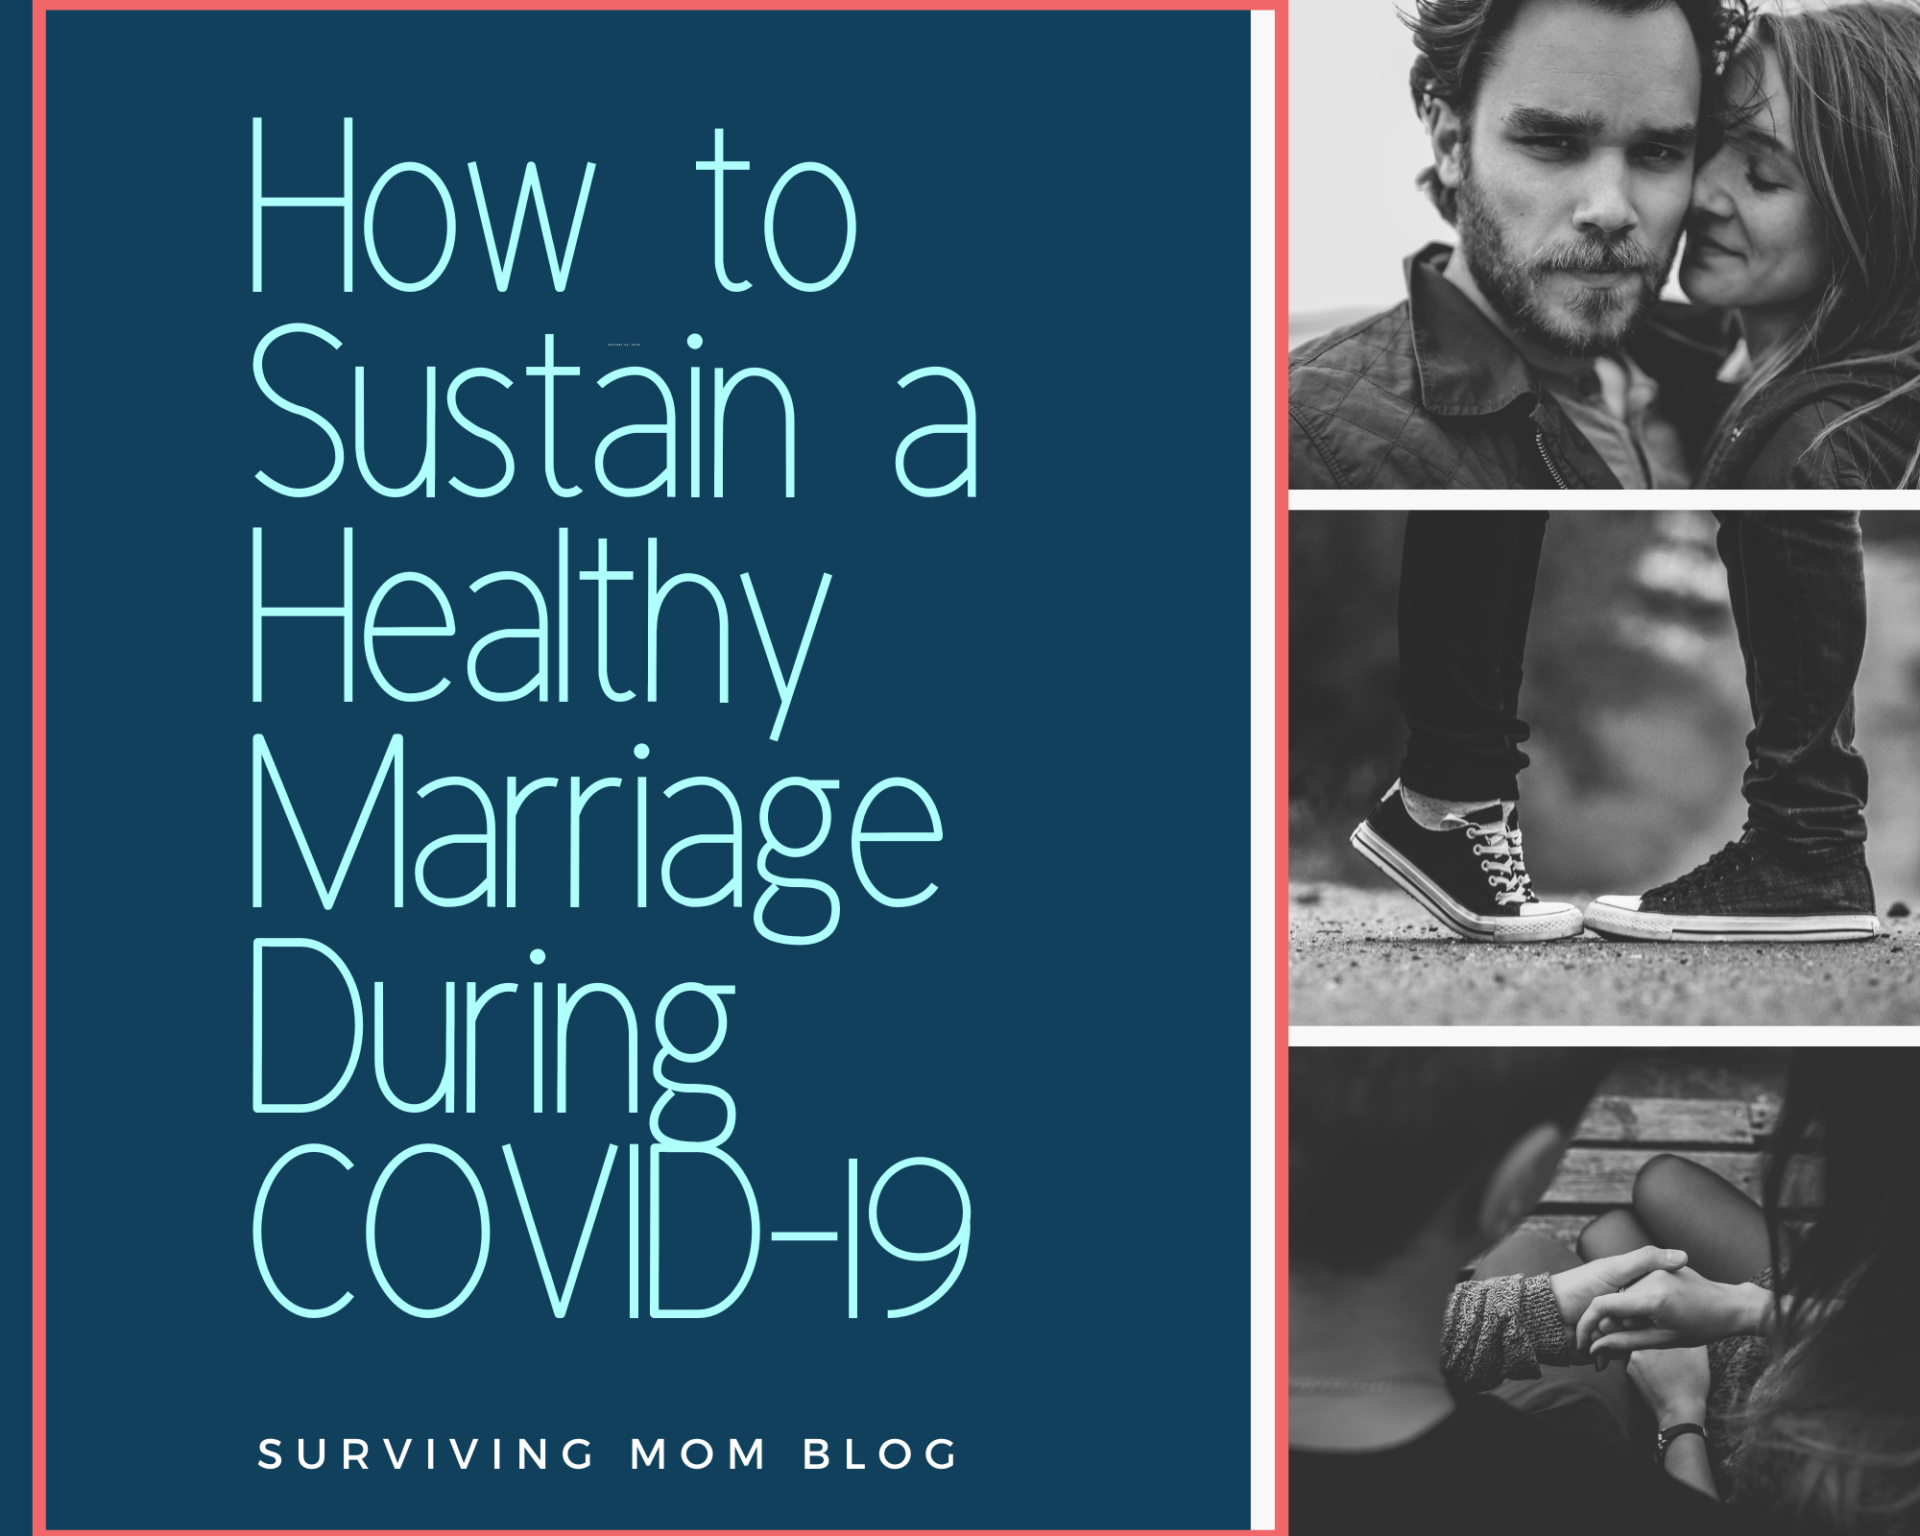 How to Sustain a Healthy Marriage During COVID-19